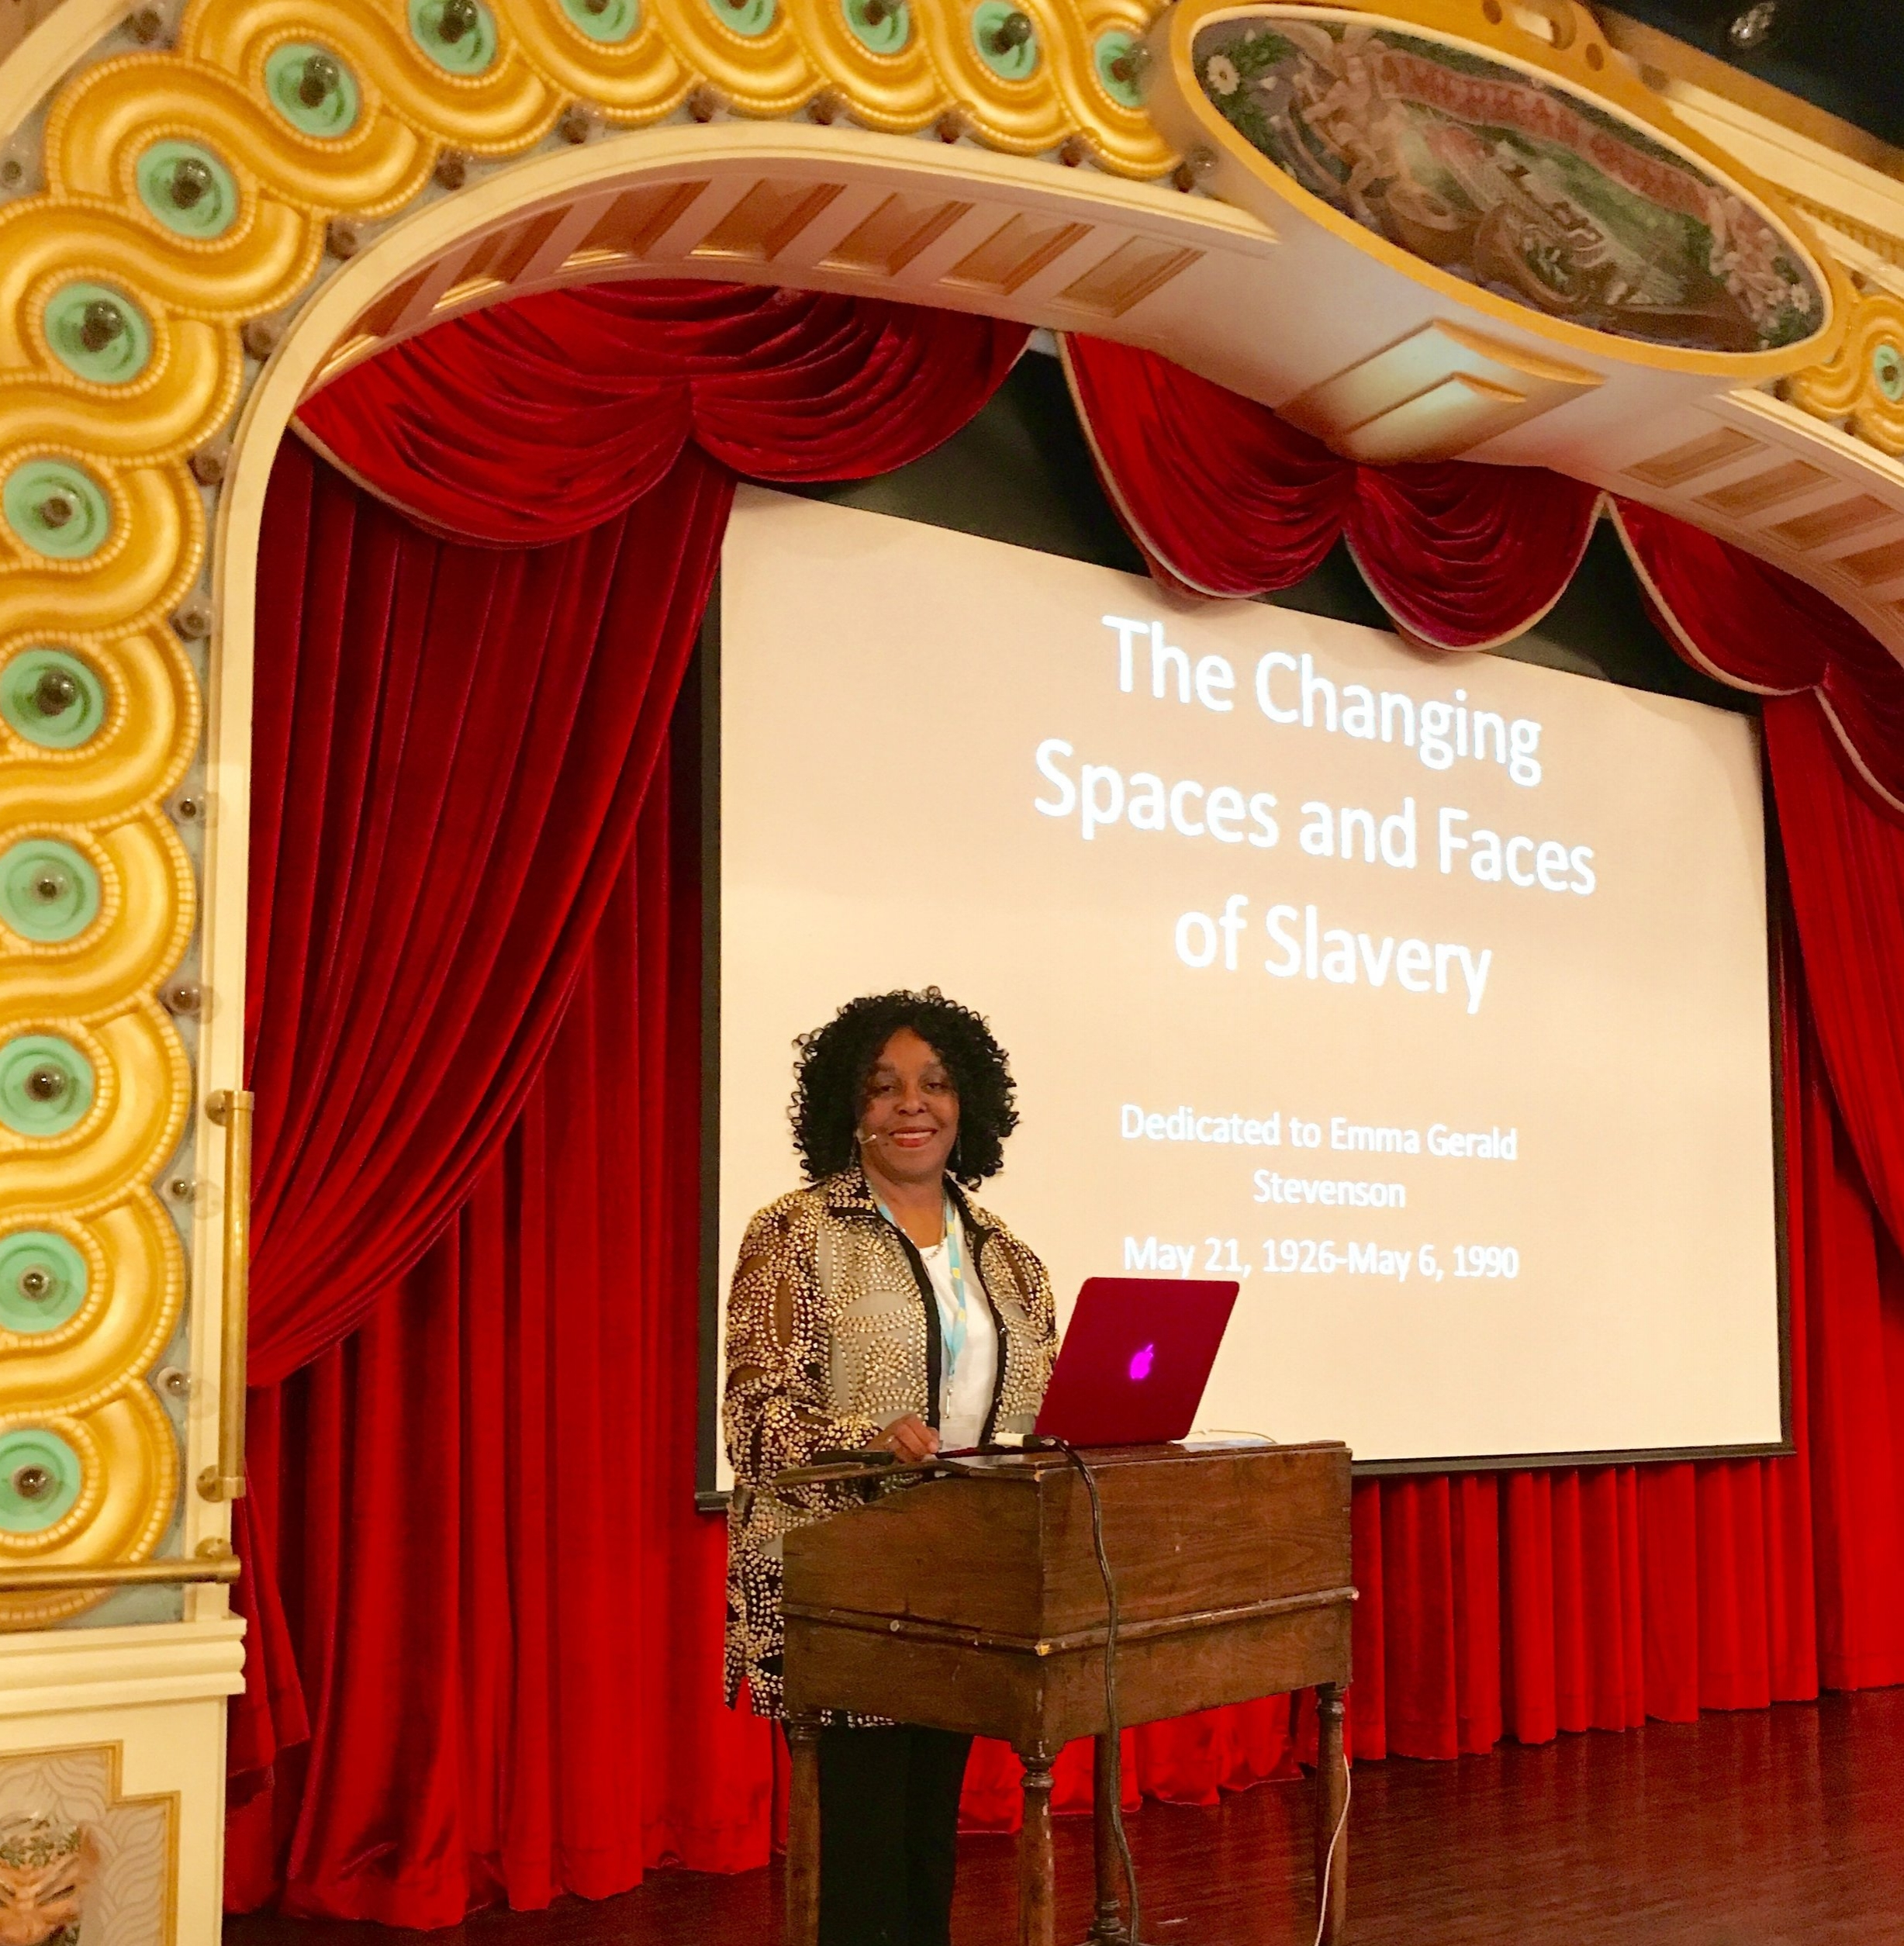 """Brenda E. Stevenson Serves as a Distinguished Lecturer For the Southern Grandeur Tour2017 - Brenda E. Stevenson presented her research on""""The Changing Spaces and Faces of Slavery"""" during the 2017 Southern Grandeur Tour in her role as a distinguished lecturer. The tour journeyed down the Mississippi River visiting cities in Louisiana, Mississippi and Tennessee to explore the sites and histories of the American South."""